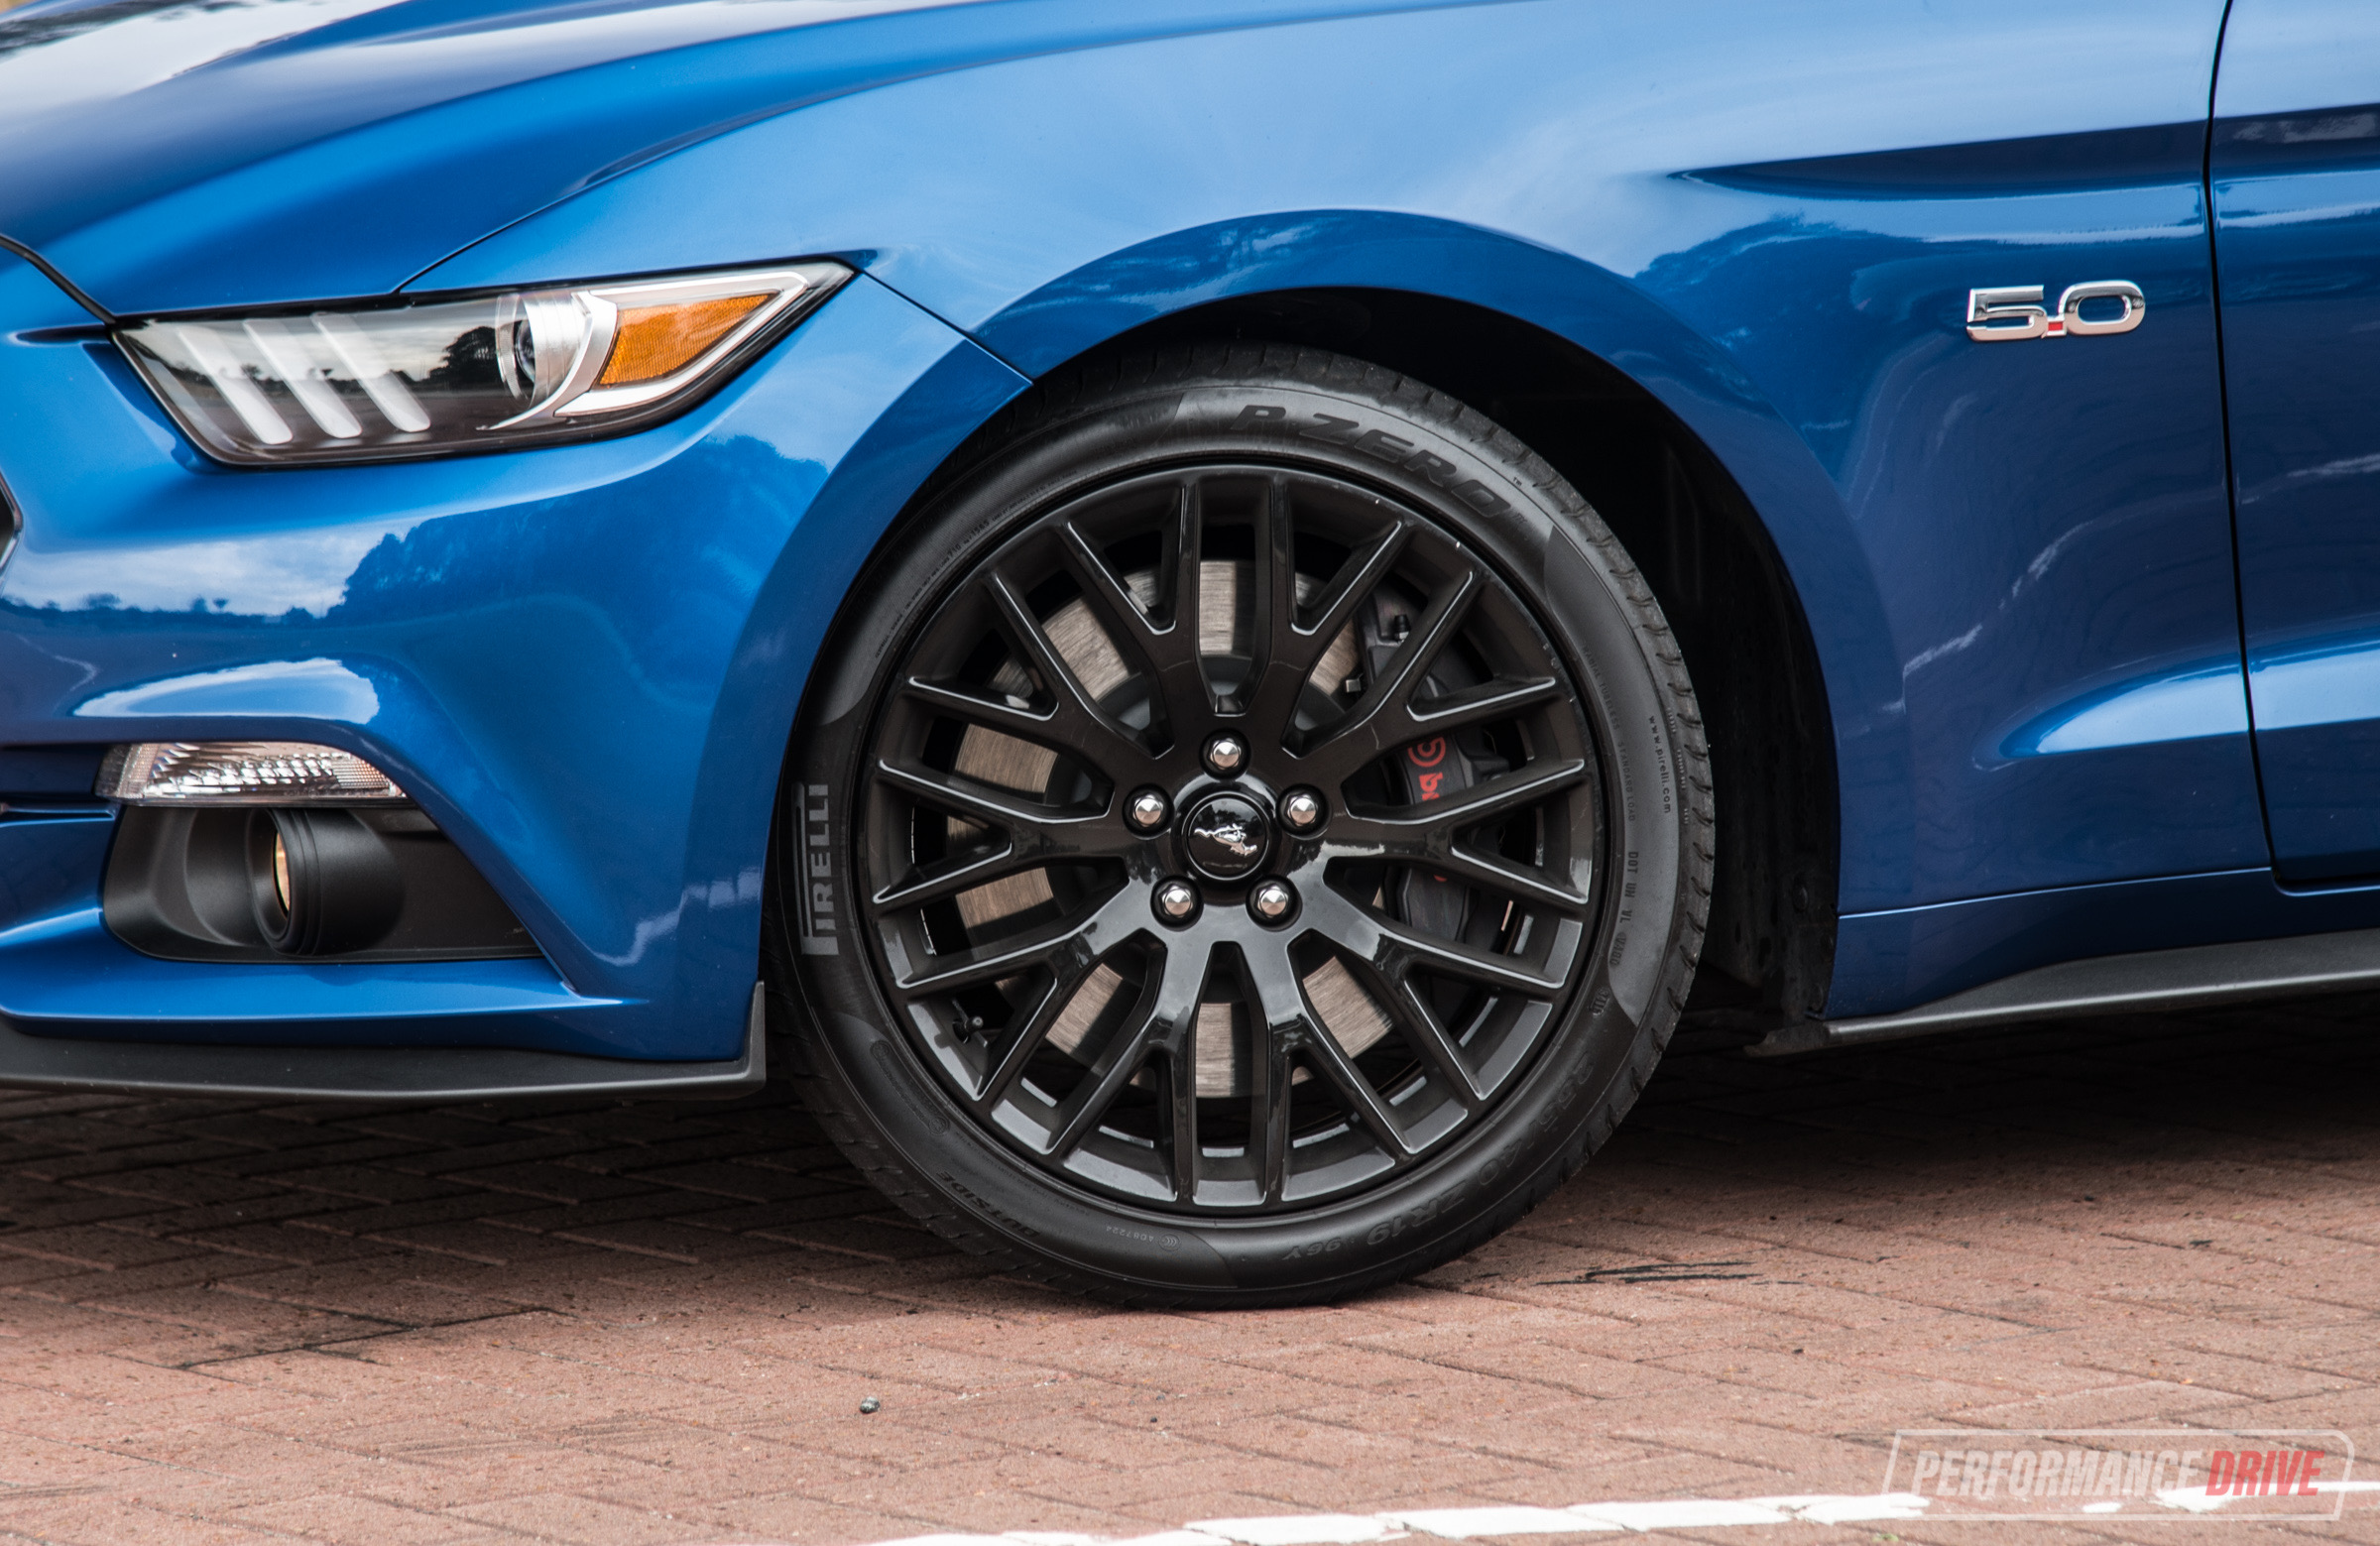 Ford Mustang Gt Brakes